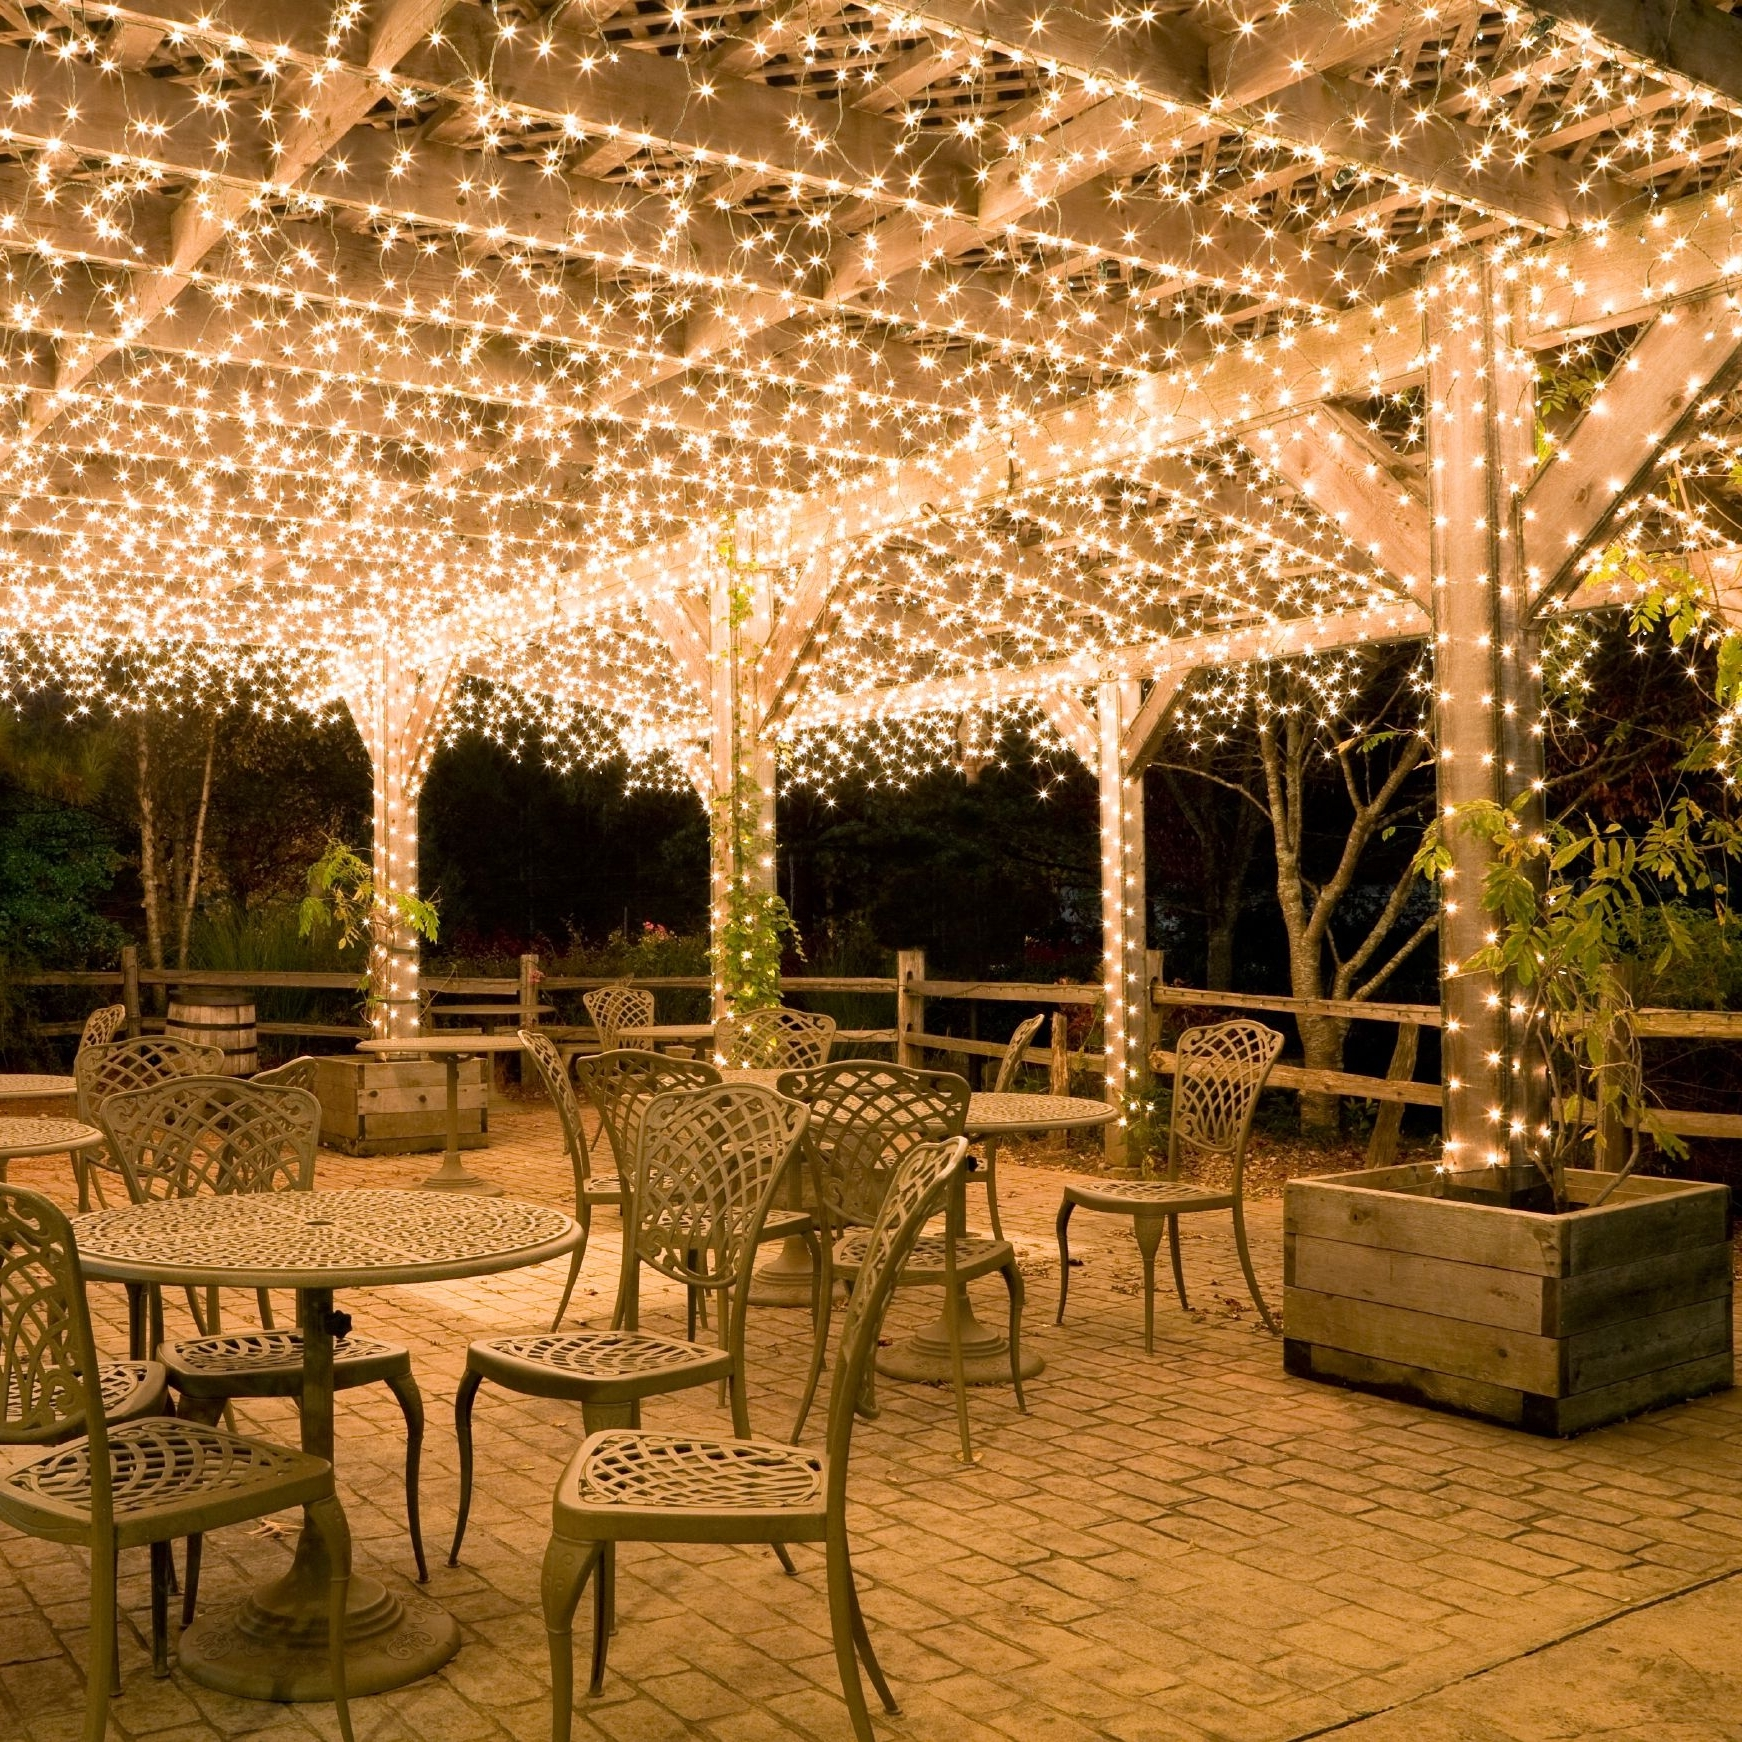 Widely Used Hang White Icicle Lights To Create Magical Outdoor Lighting (View 19 of 20)